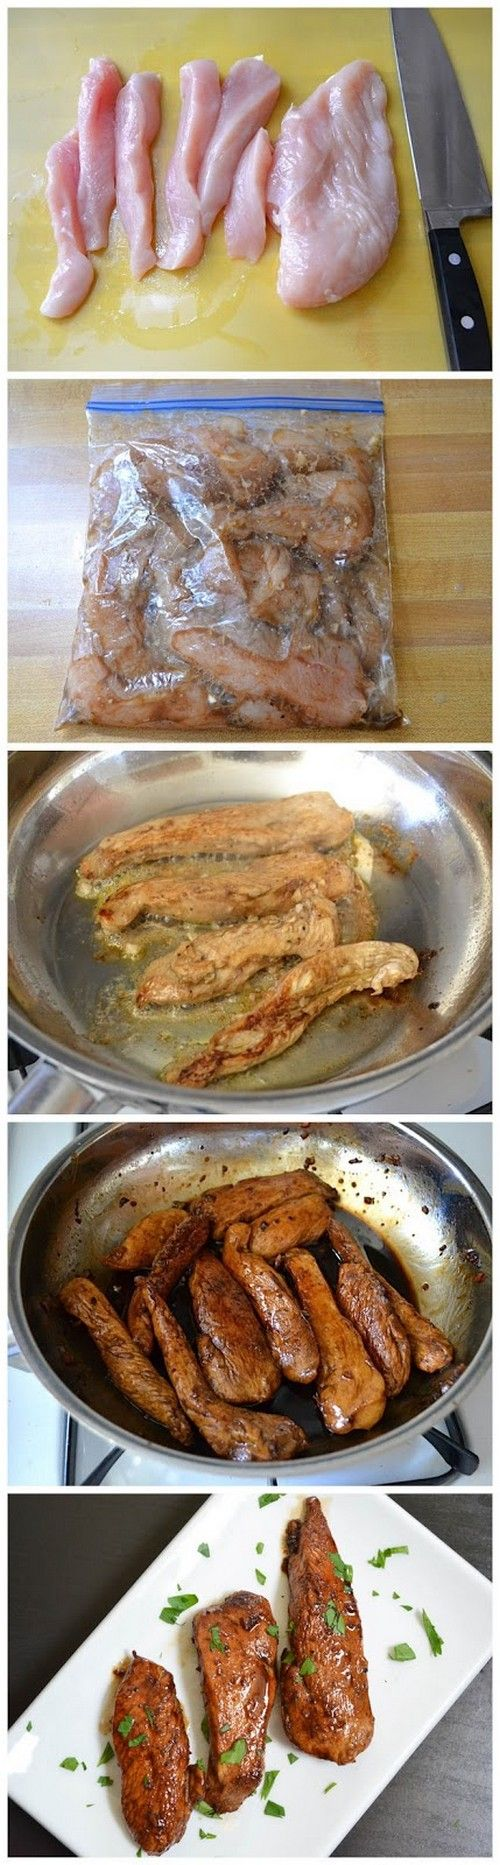 Honey balsamic chicken tenders. This chicken is bursting with flavor from the tangy balsamic vinegar, sweet honey, and rich butter. So Good!